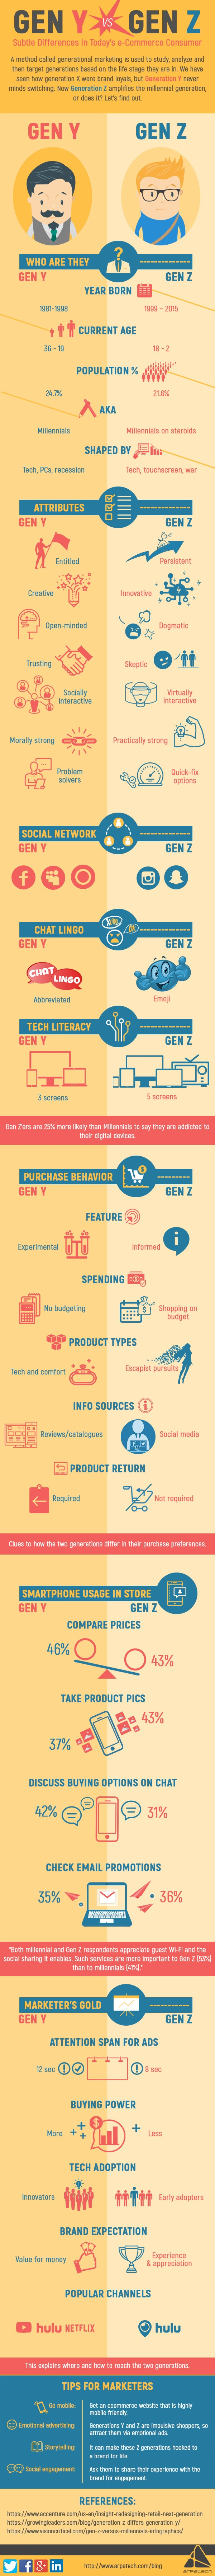 Generation Y vs Gen Z #infographic